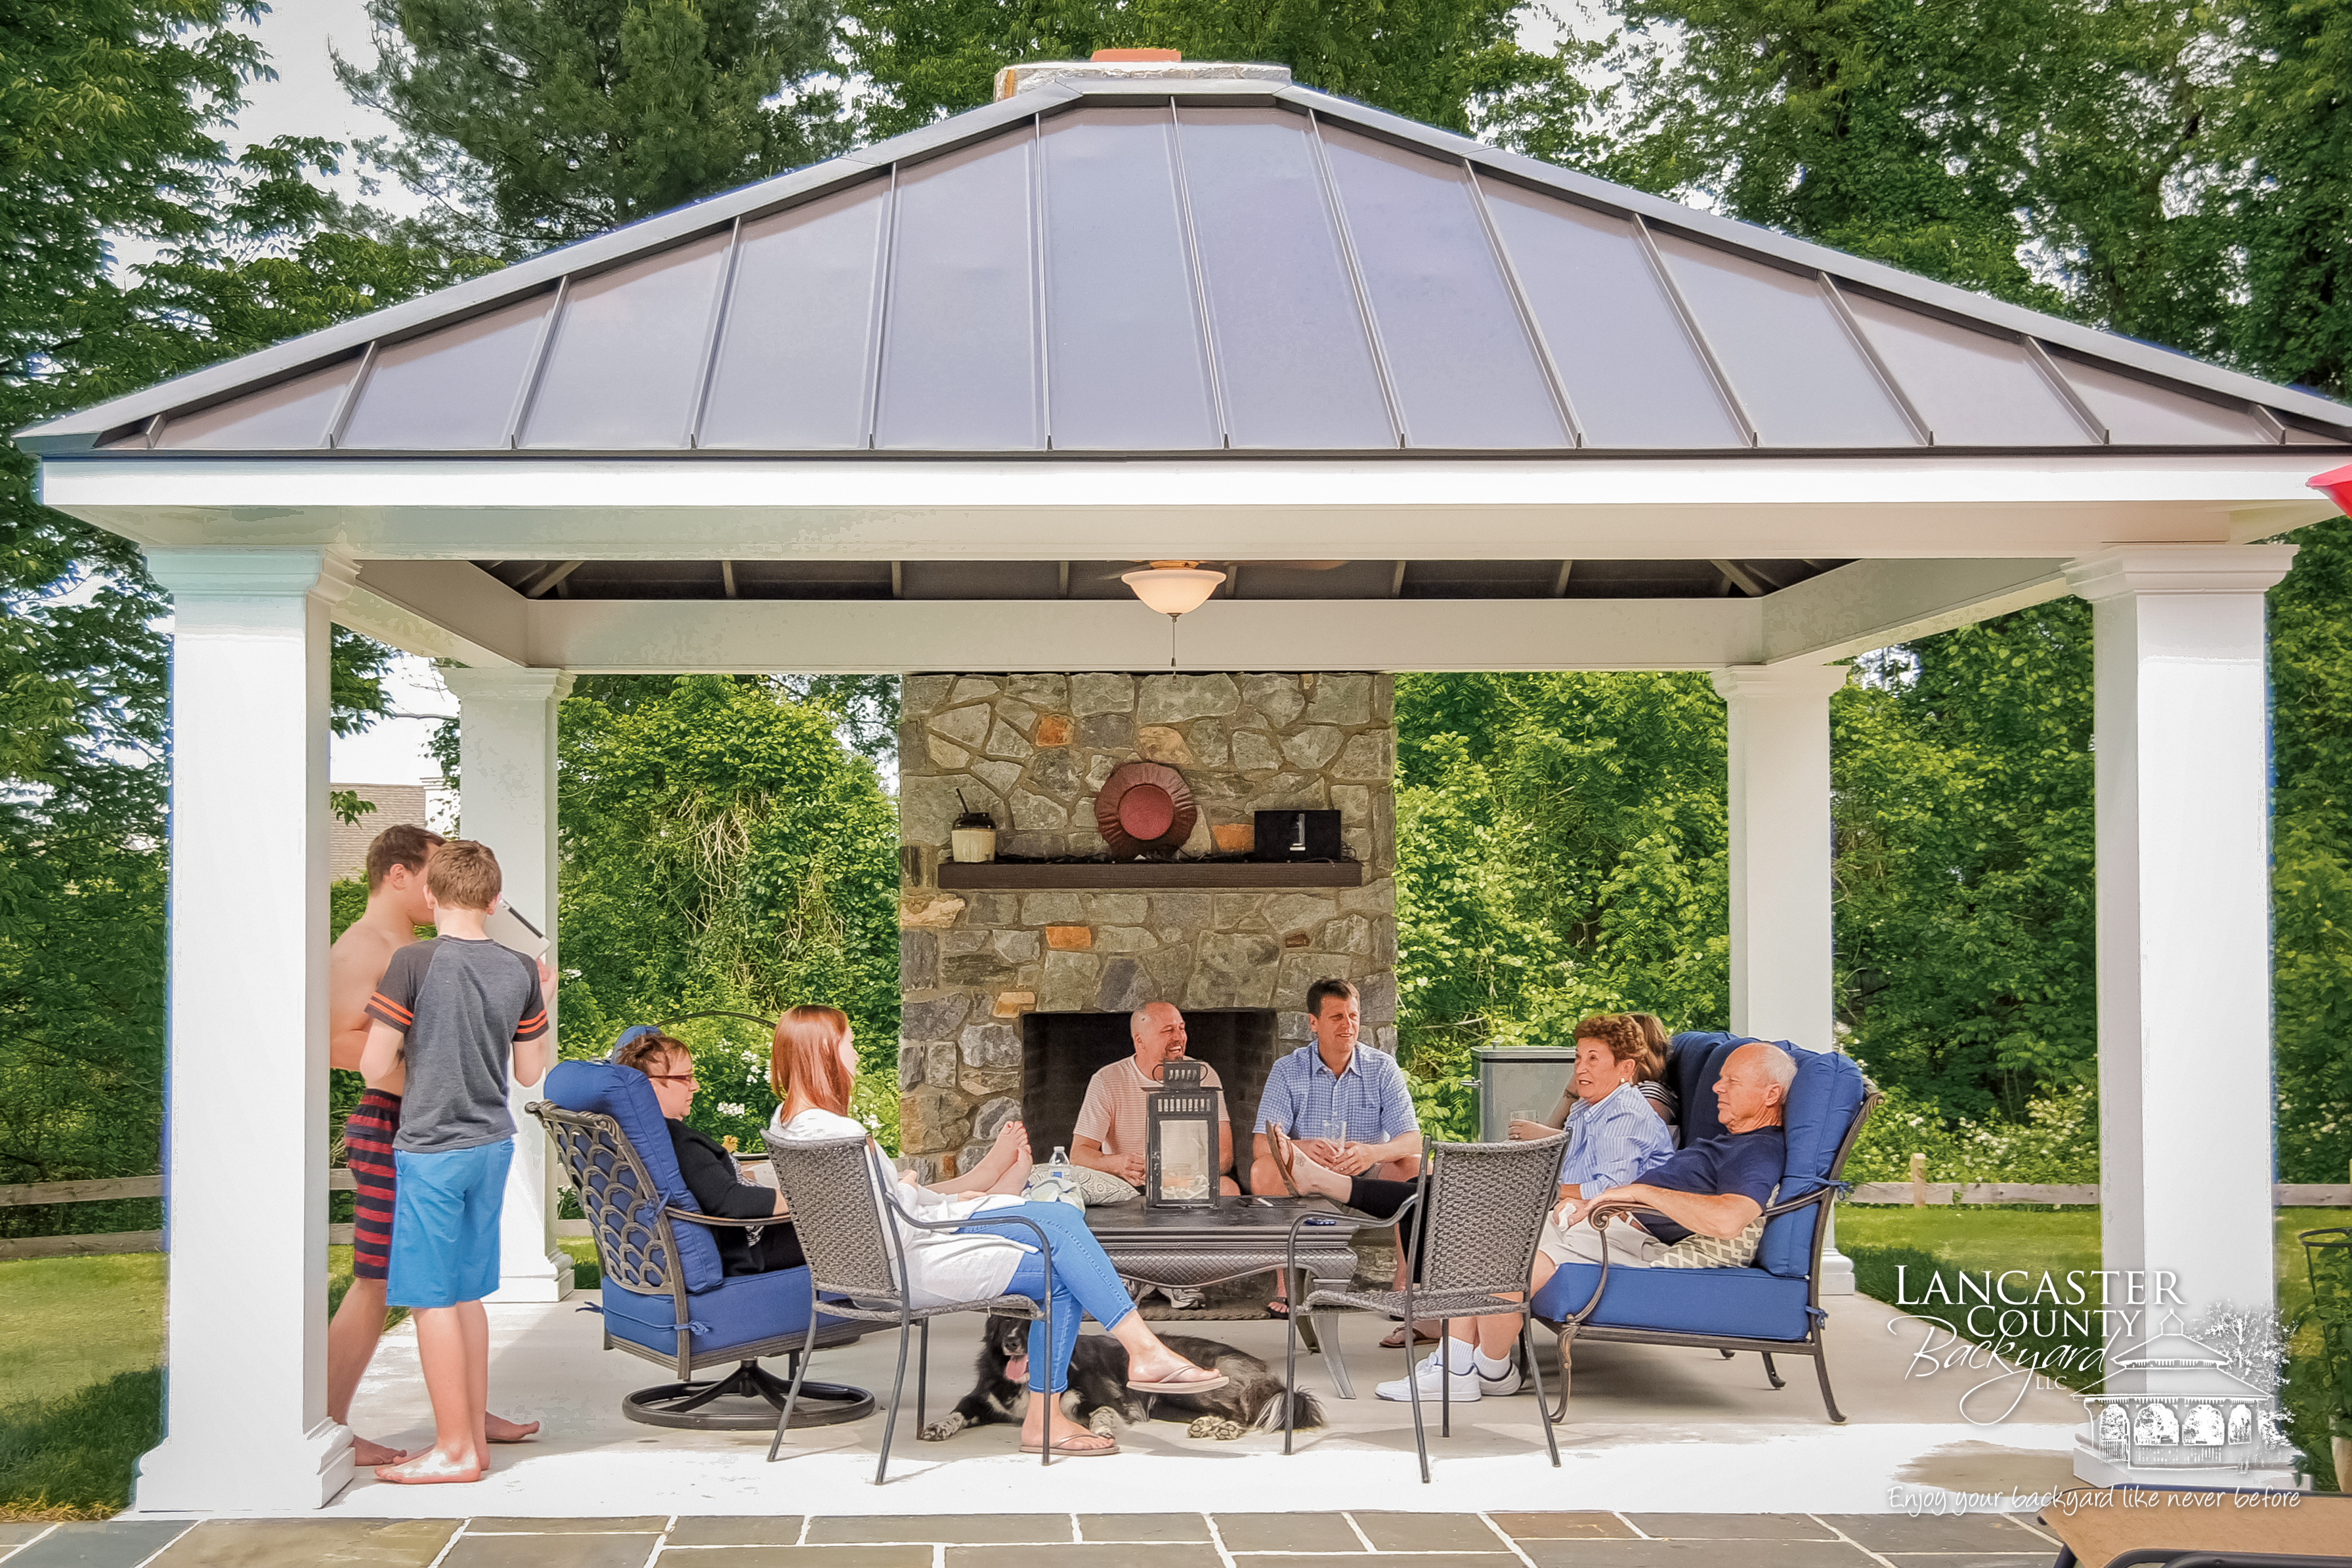 Pavilion Design For All Types Of Backyards 3 Pavlion Ideas Explained with regard to Pavilion Ideas Backyard